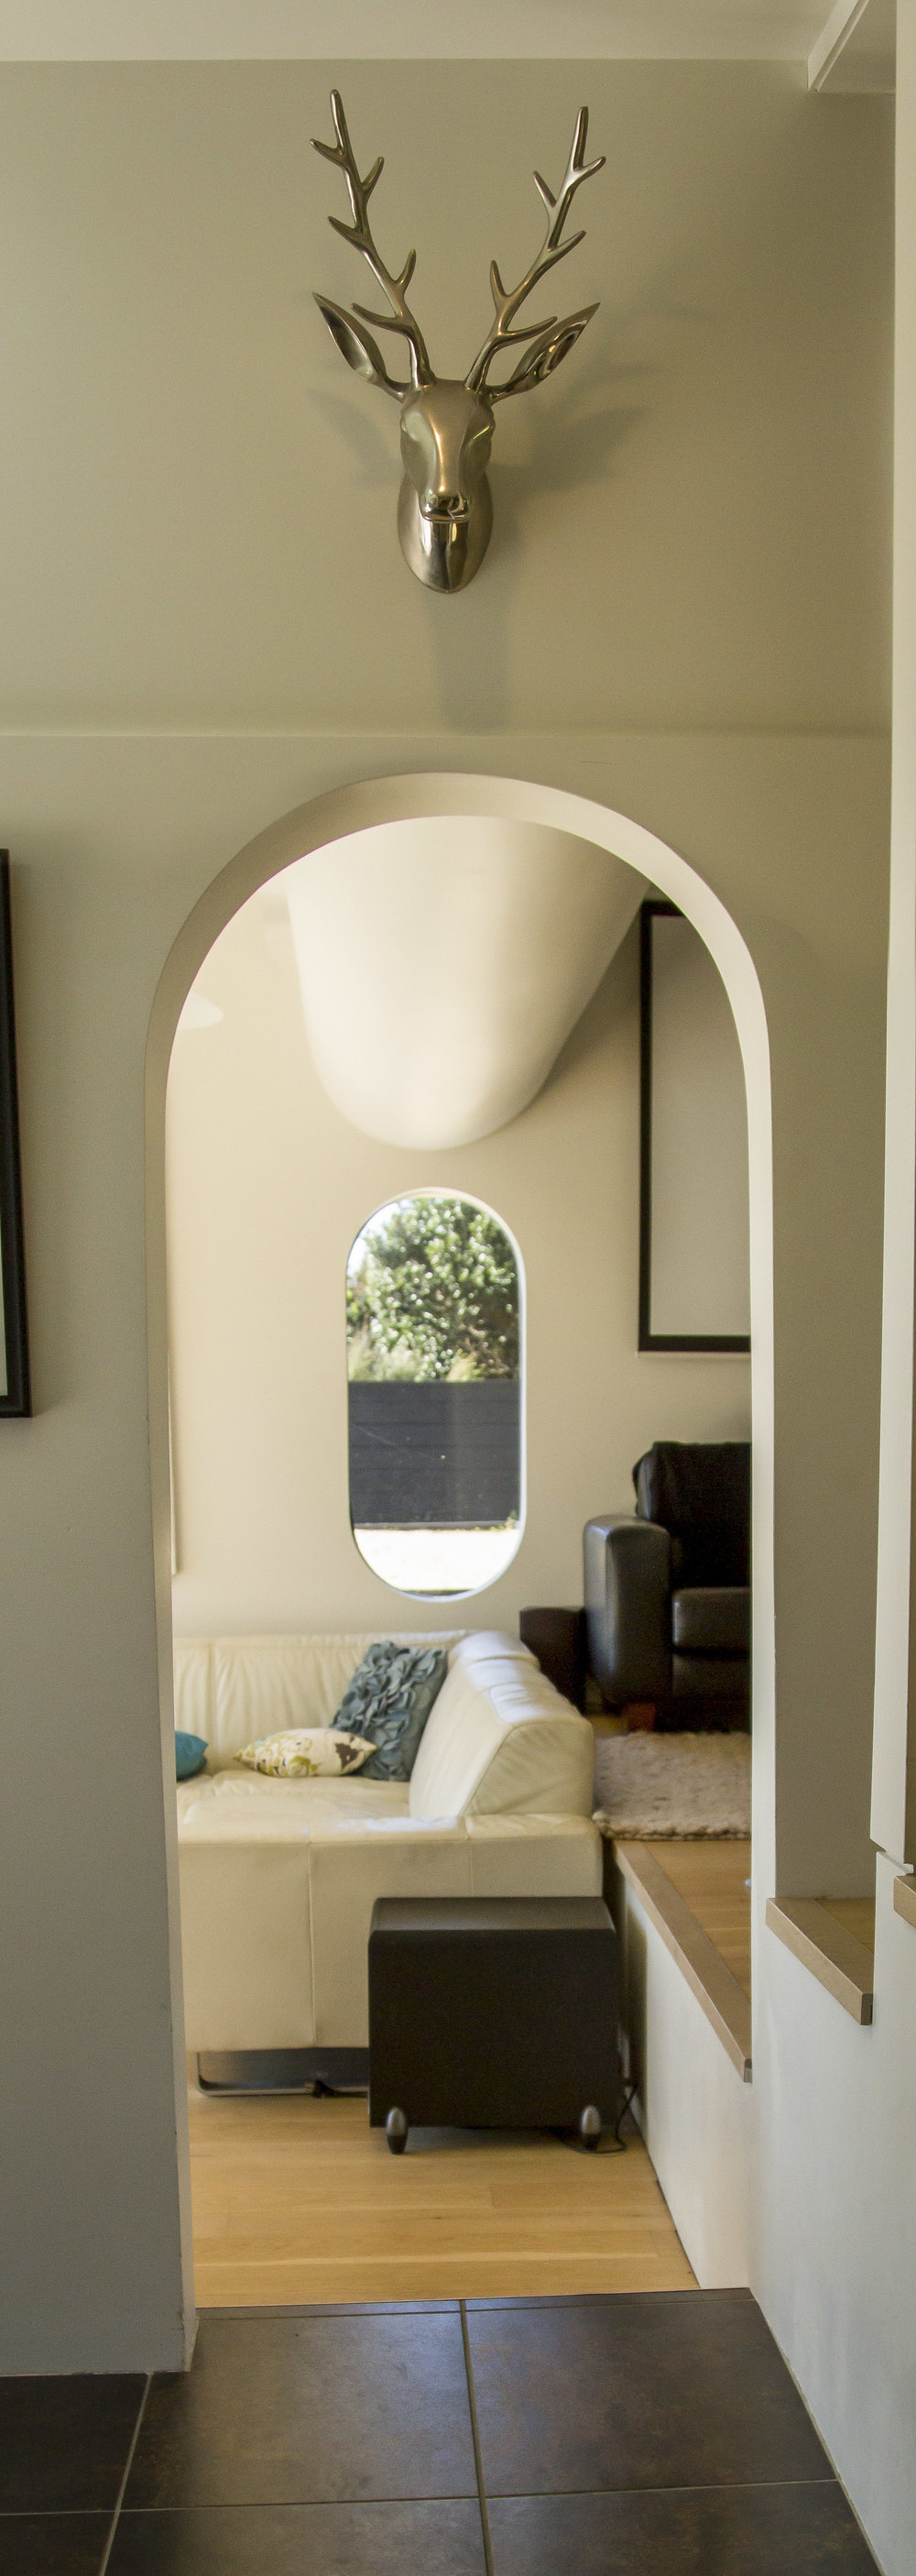 Arches  - Some of the original arches and curved features have been kept as a nod to what was before.